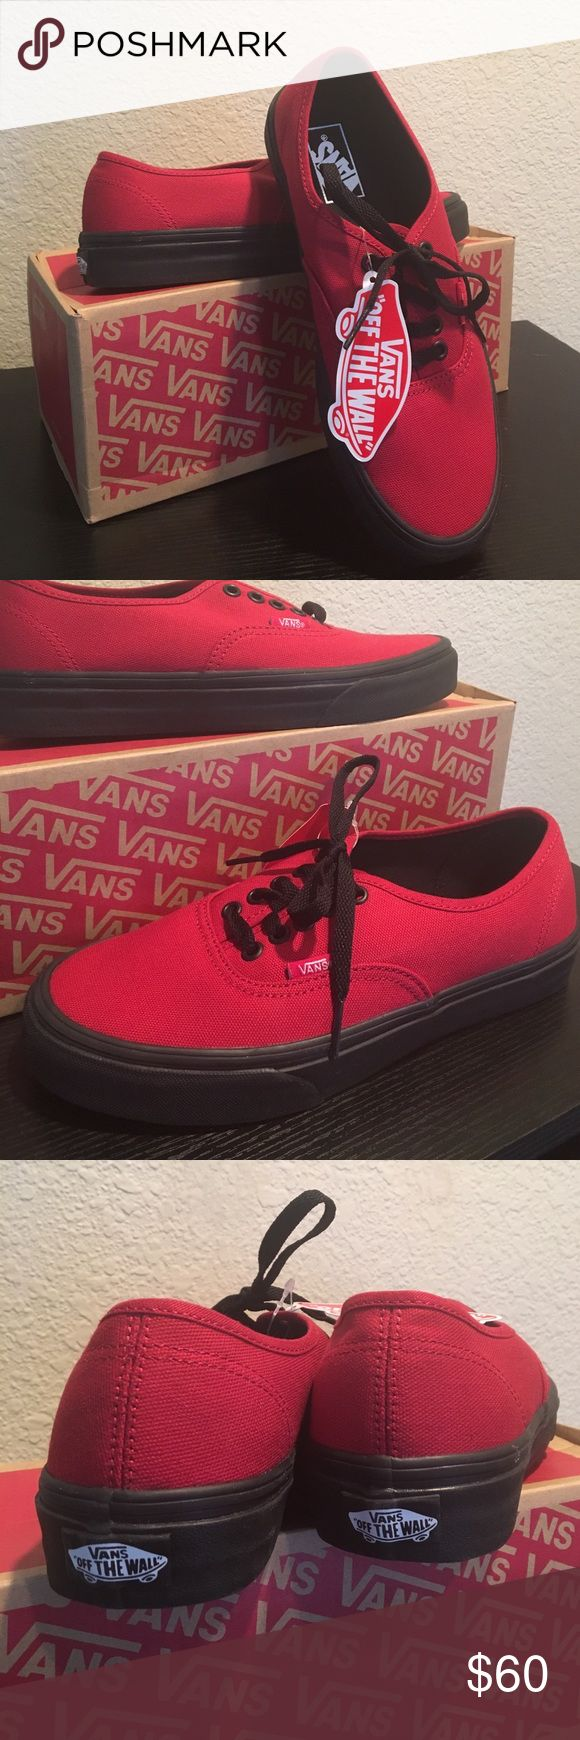 Vans Authentic Black Sole Jester Red Vans New With Box Jester Red Vans Shoes Athletic Shoes